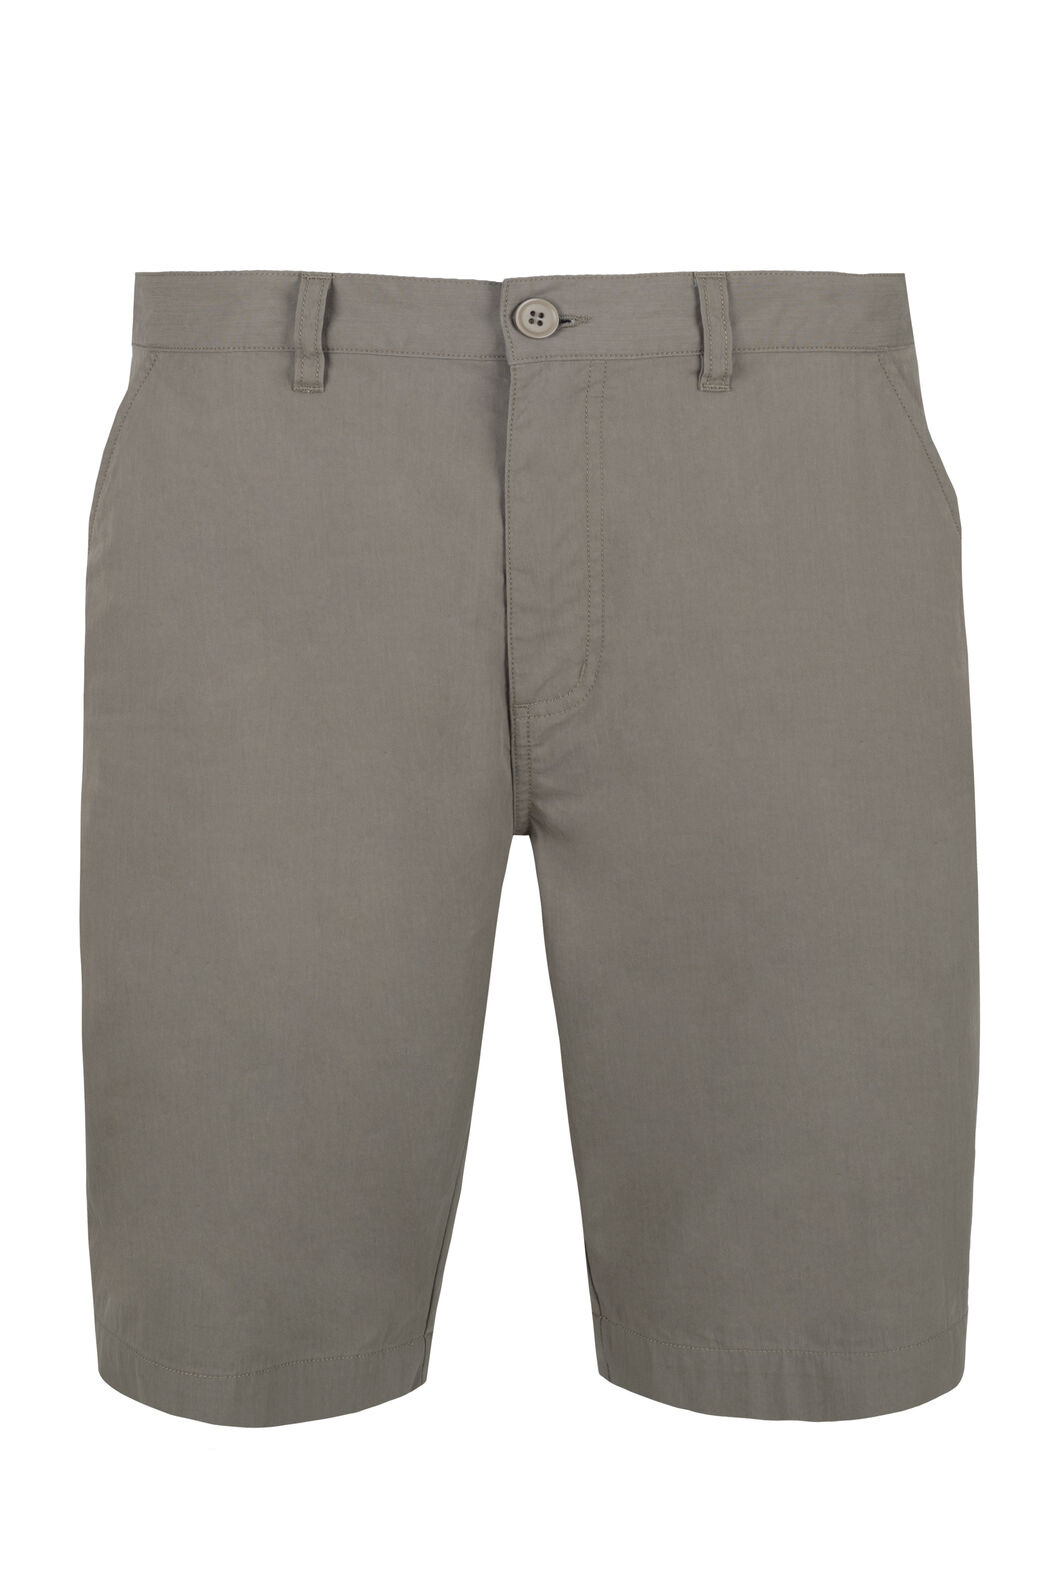 Macpac Kelburn Shorts - Men's, Lead Grey, hi-res